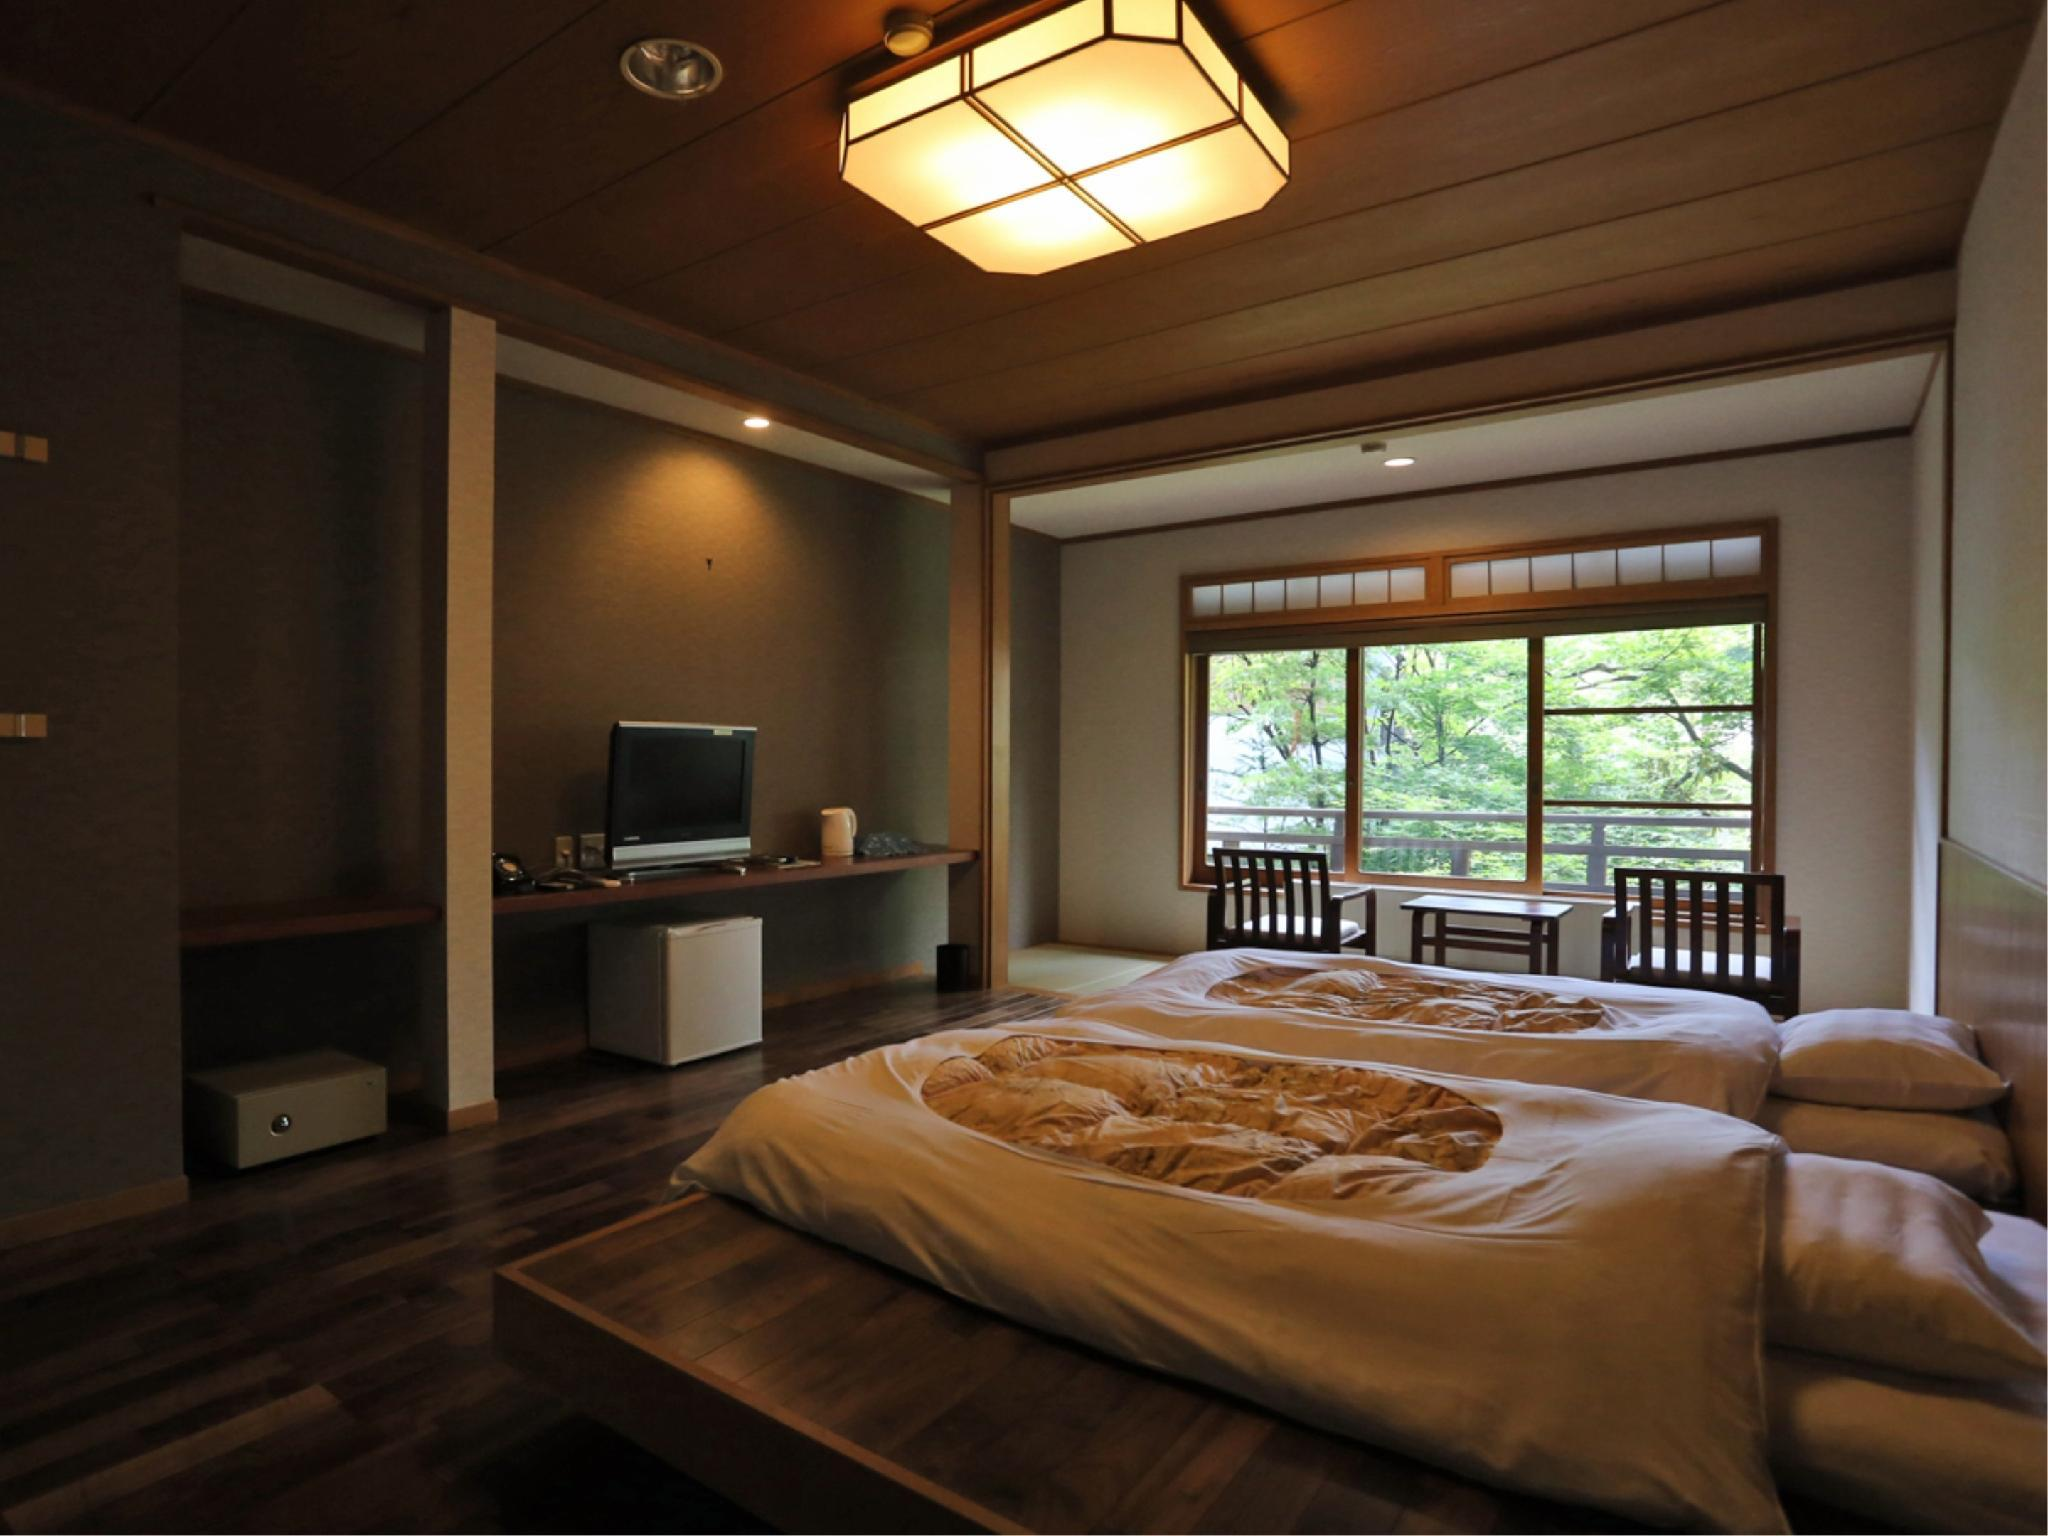 Superior Japanese/Western-style Room with 2 Beds (Main Building)